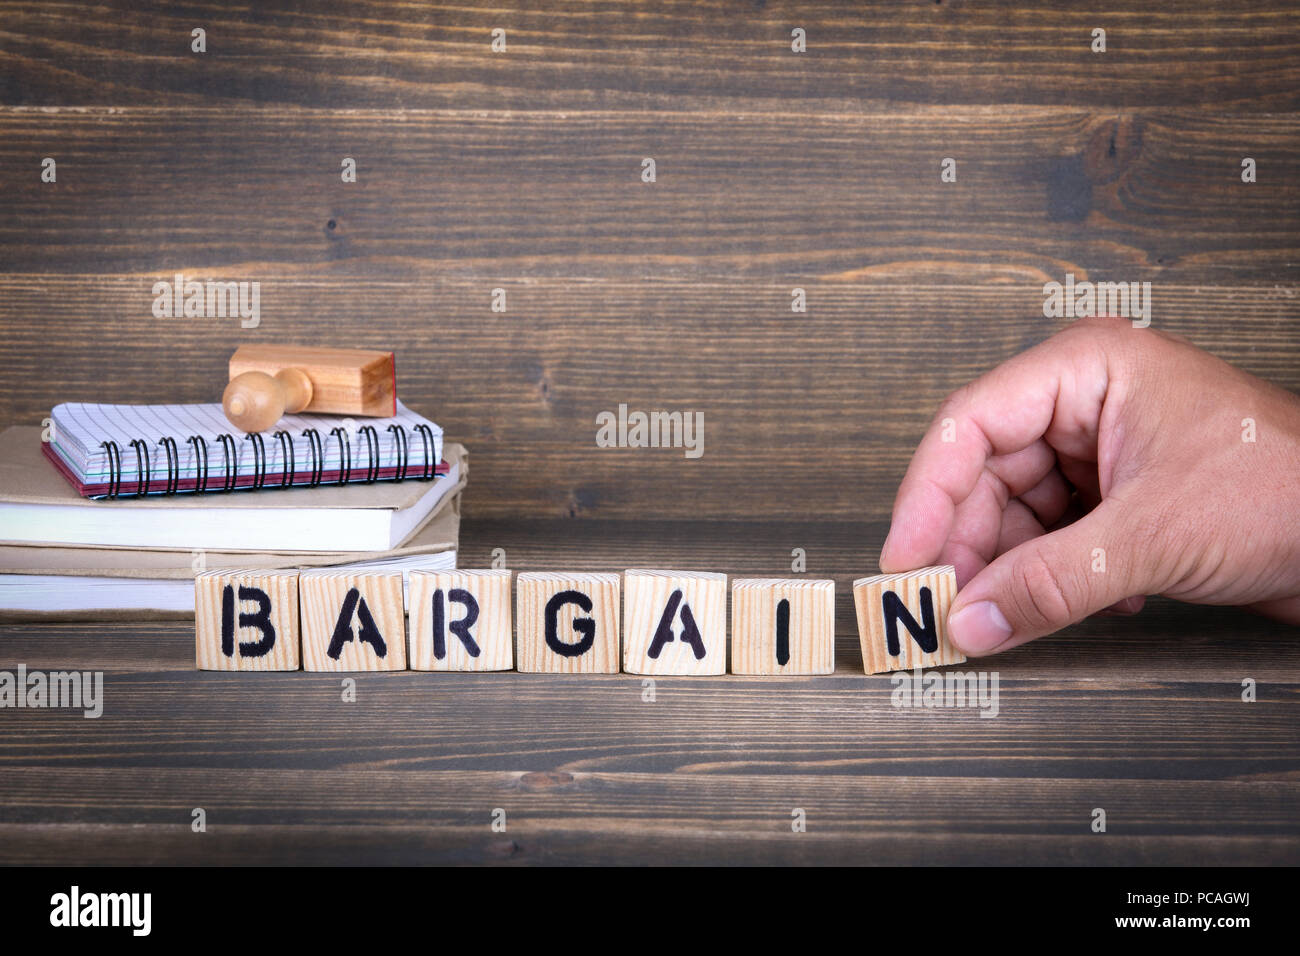 bargain. wooden letters on the office desk - Stock Image